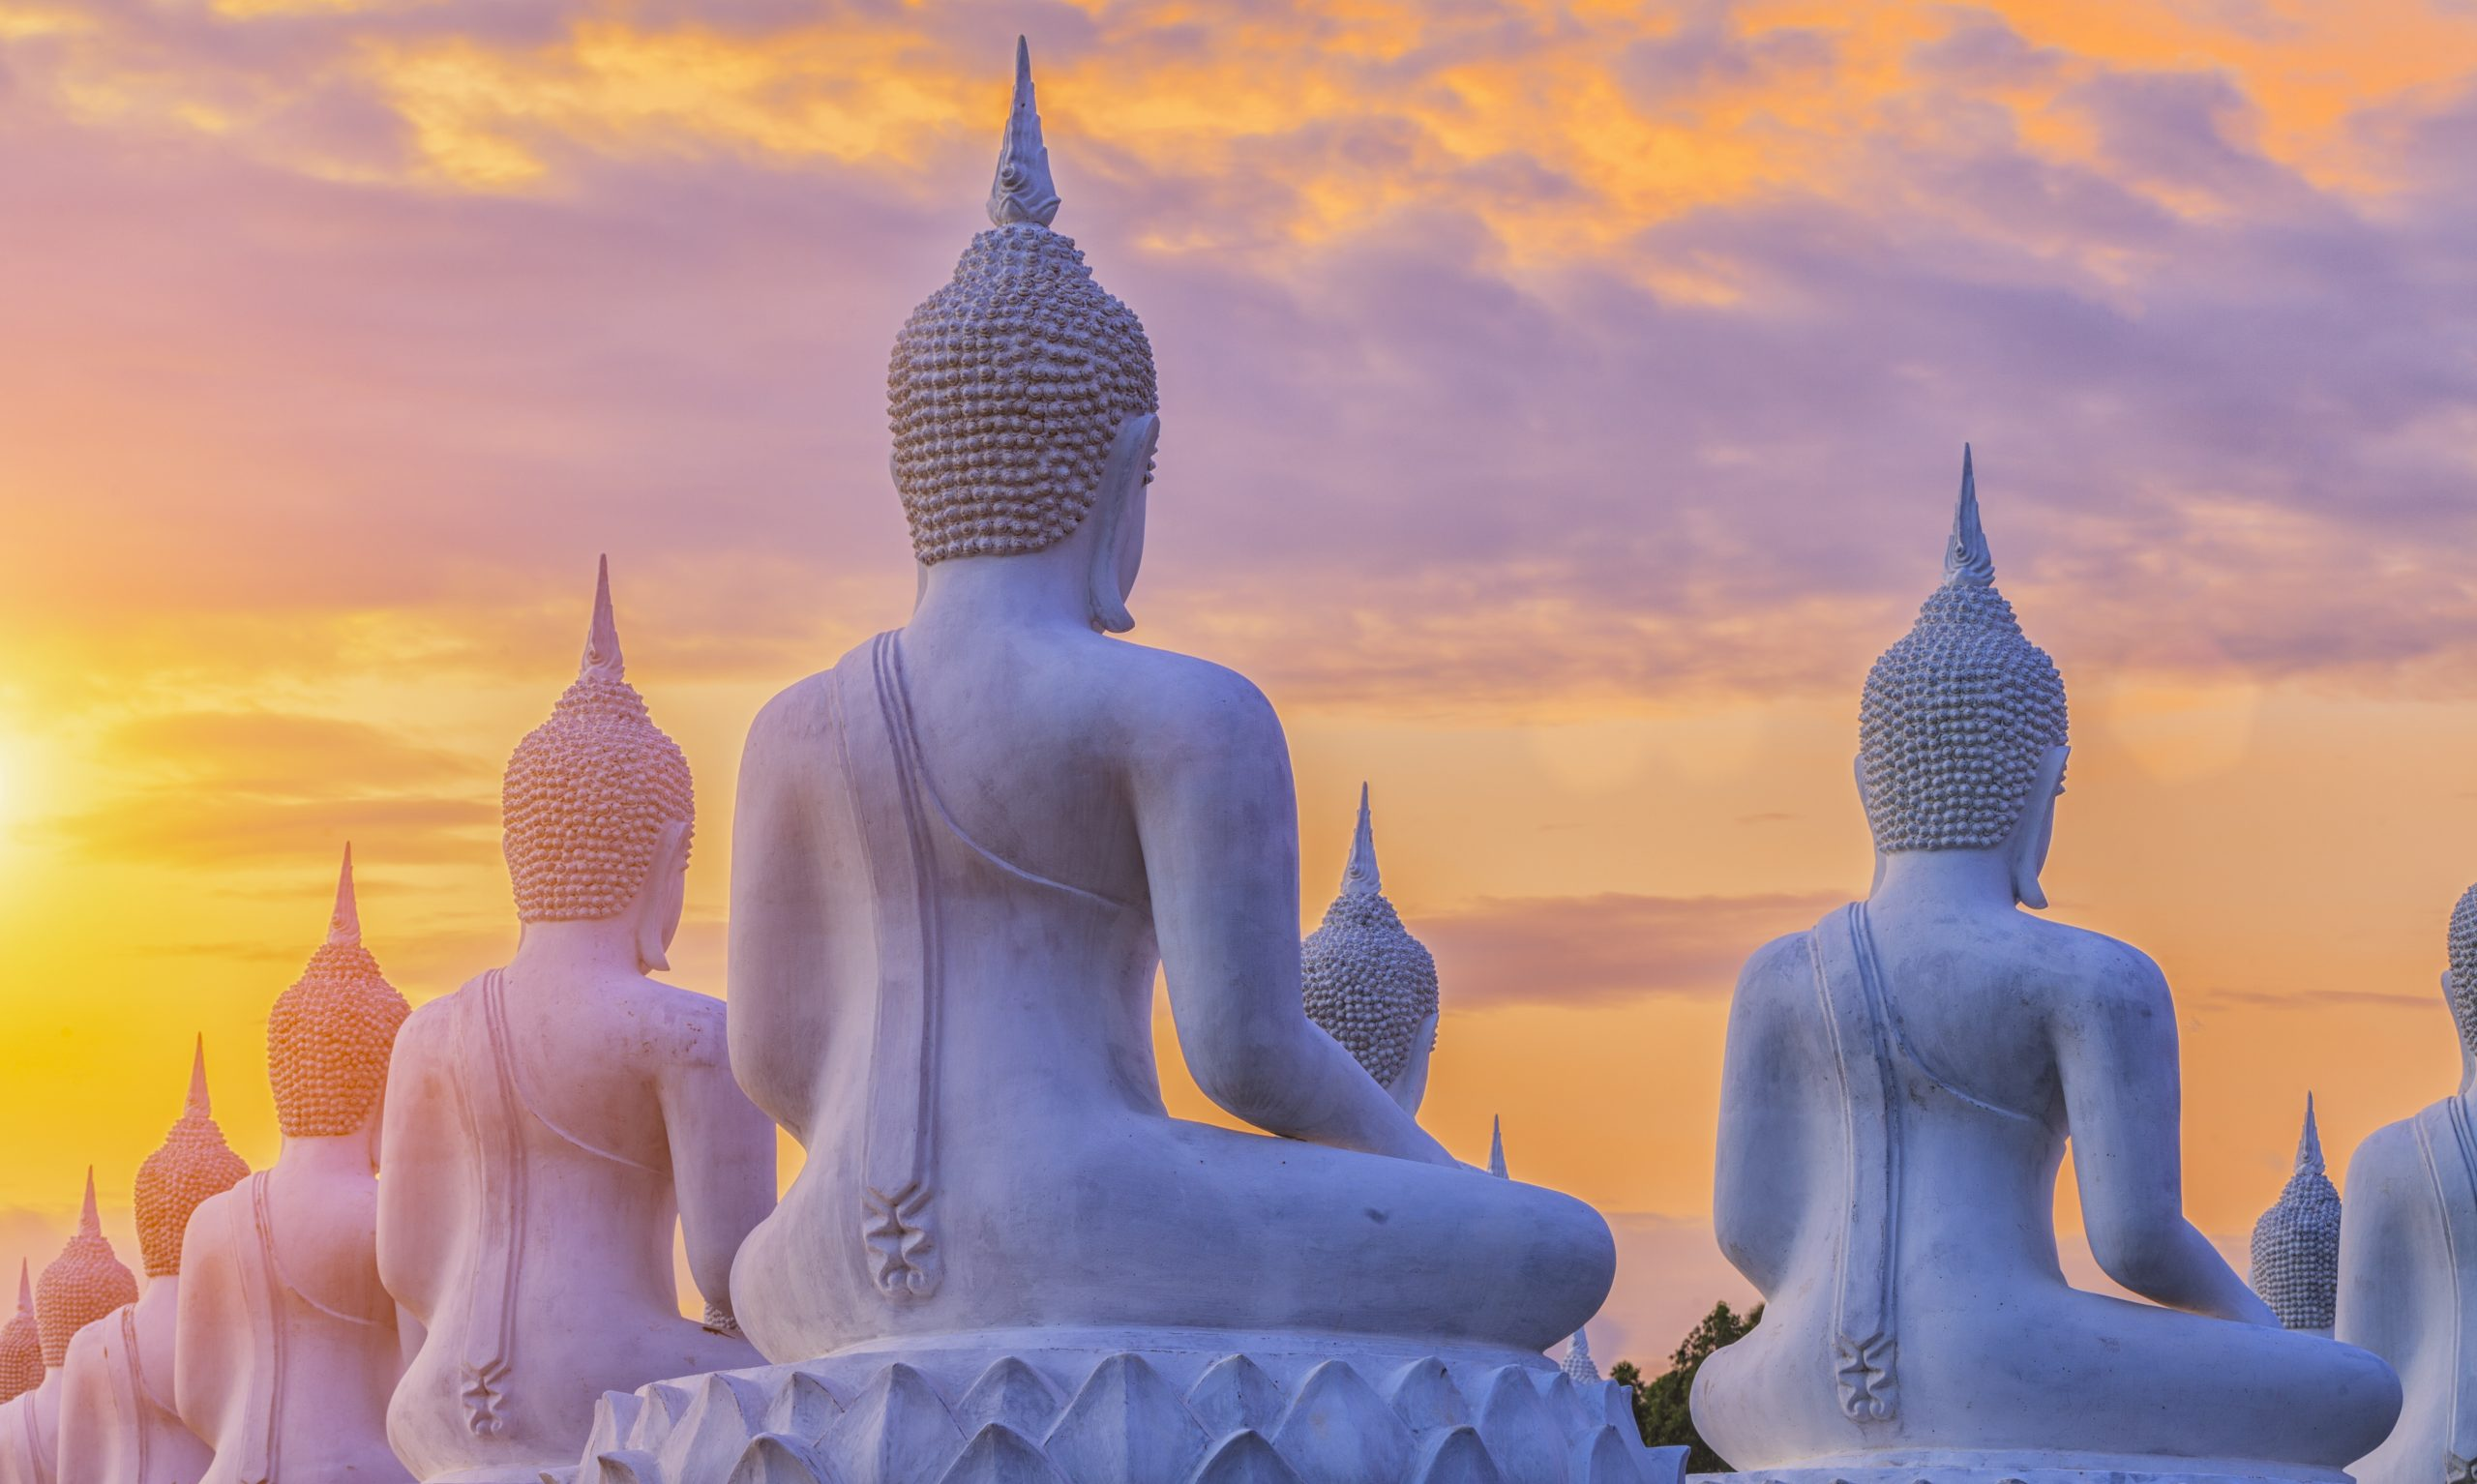 Sunset budda thailand